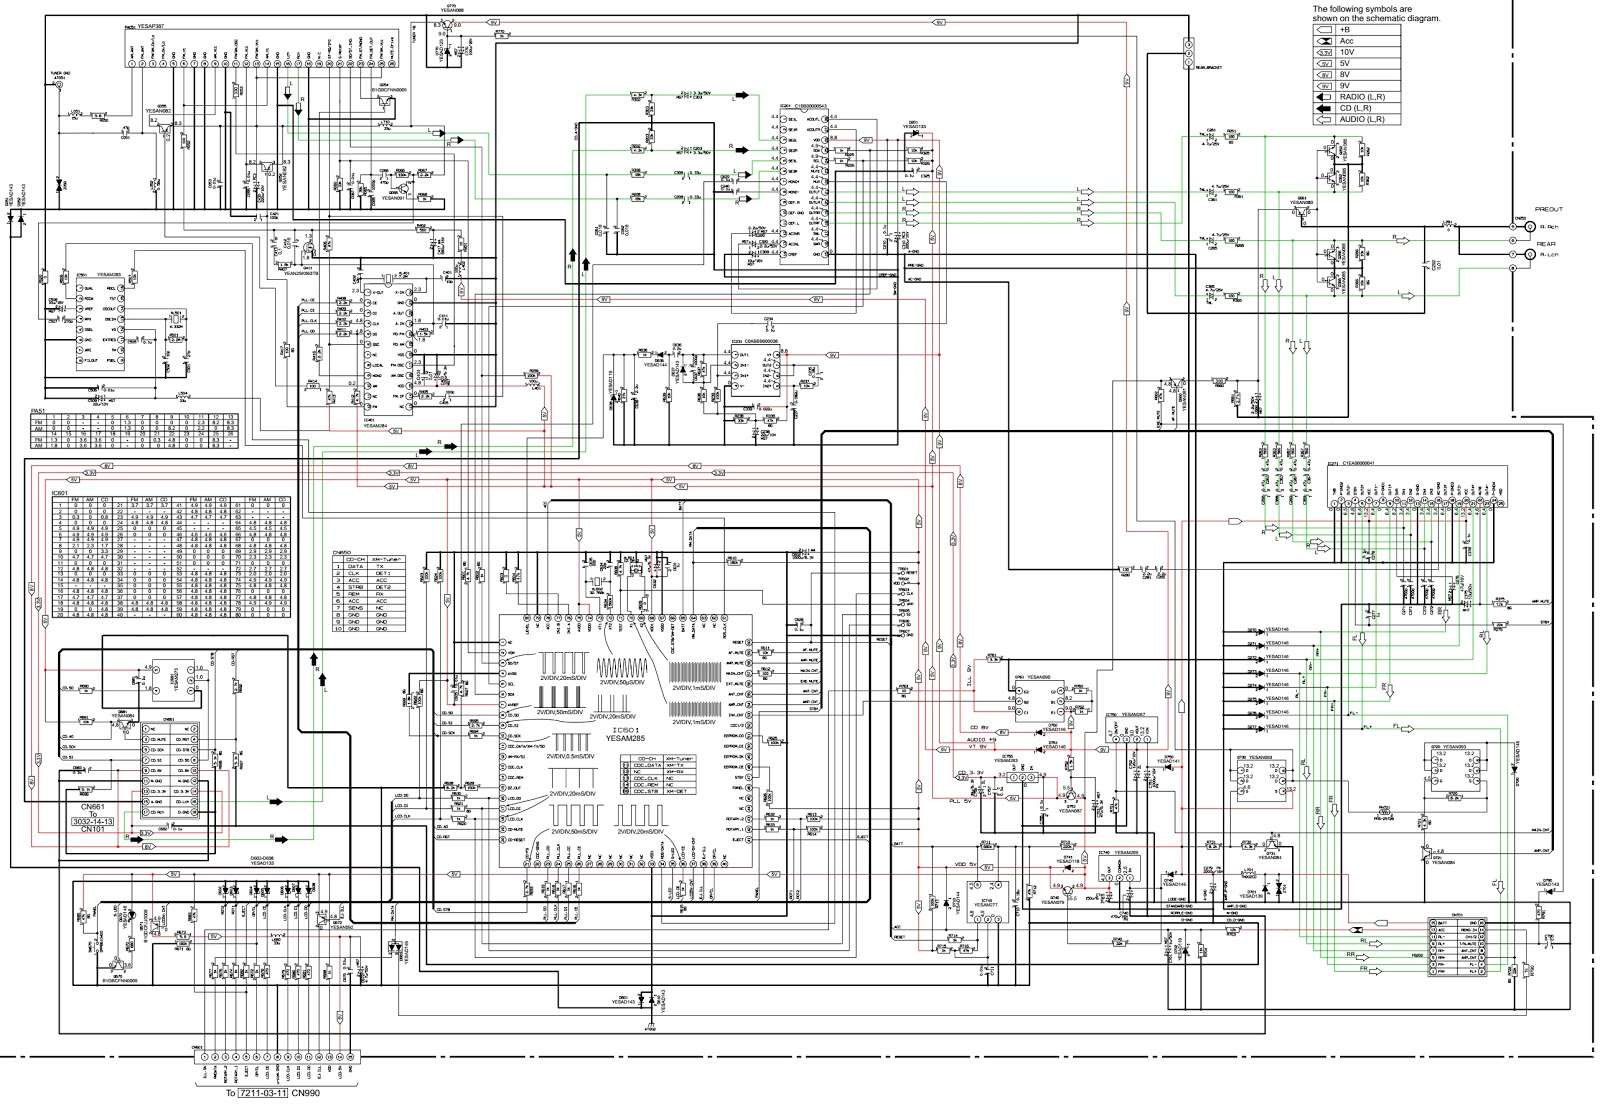 Panasonic Cq C N Circuit Diagram Exploded View